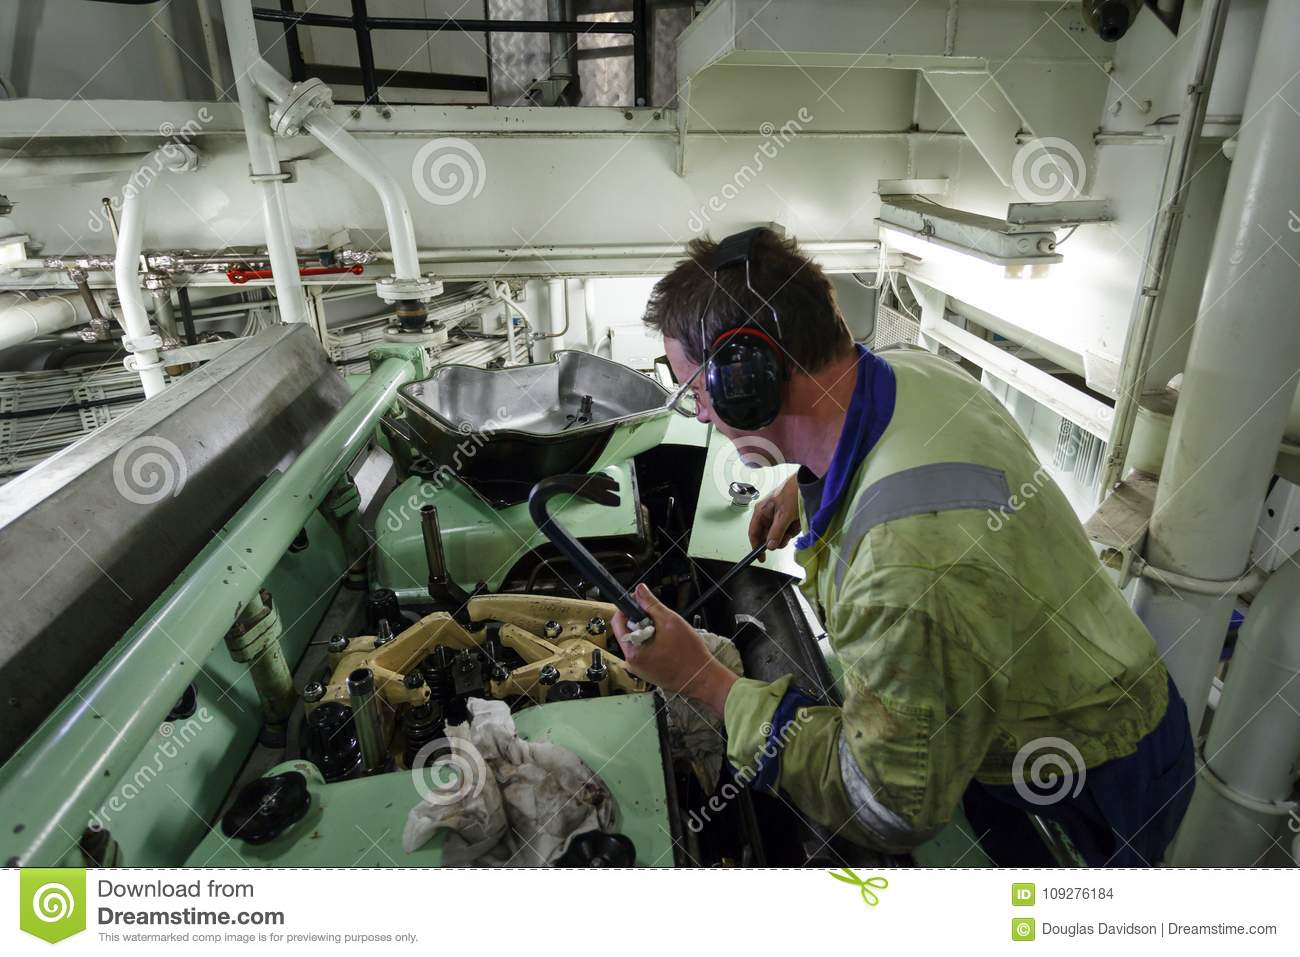 download marine engineer changing a diesel fuel injector stock photo image of changing machine